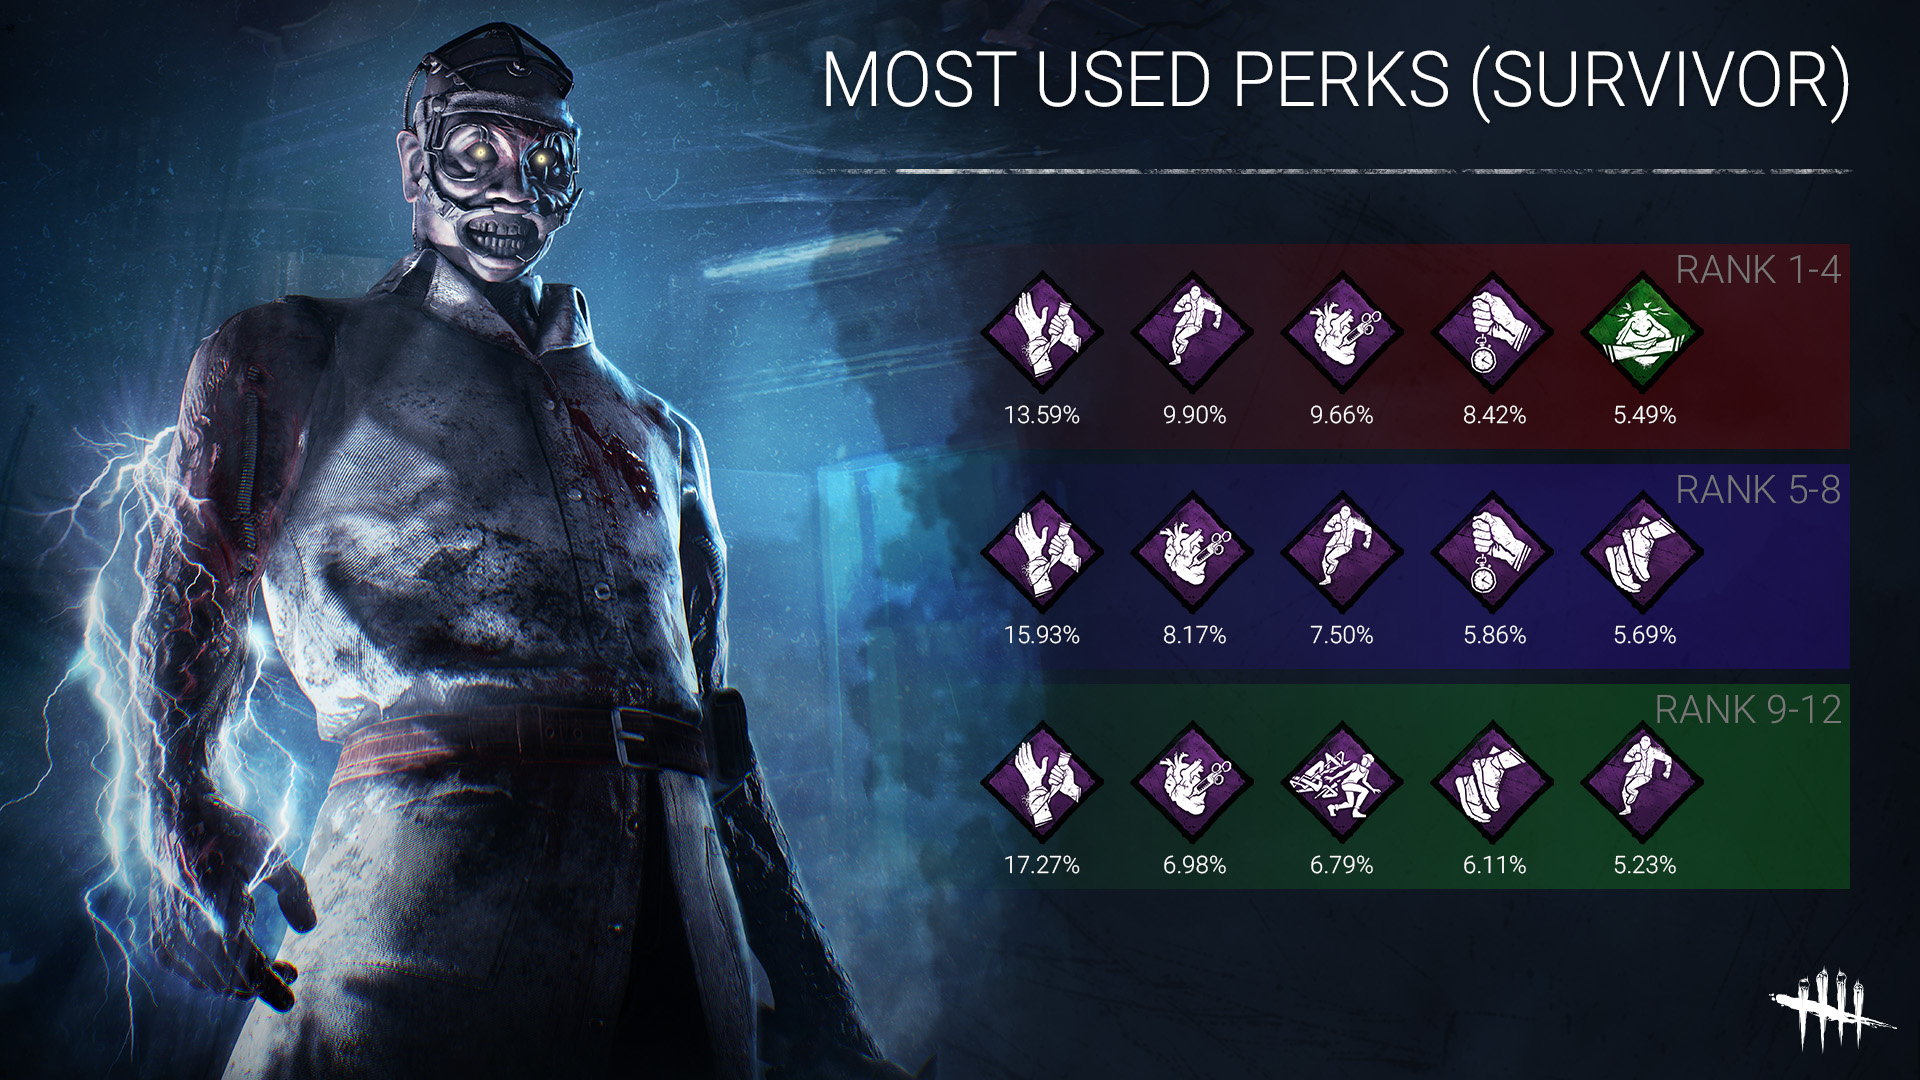 MOST_USED_PERKS.jpg